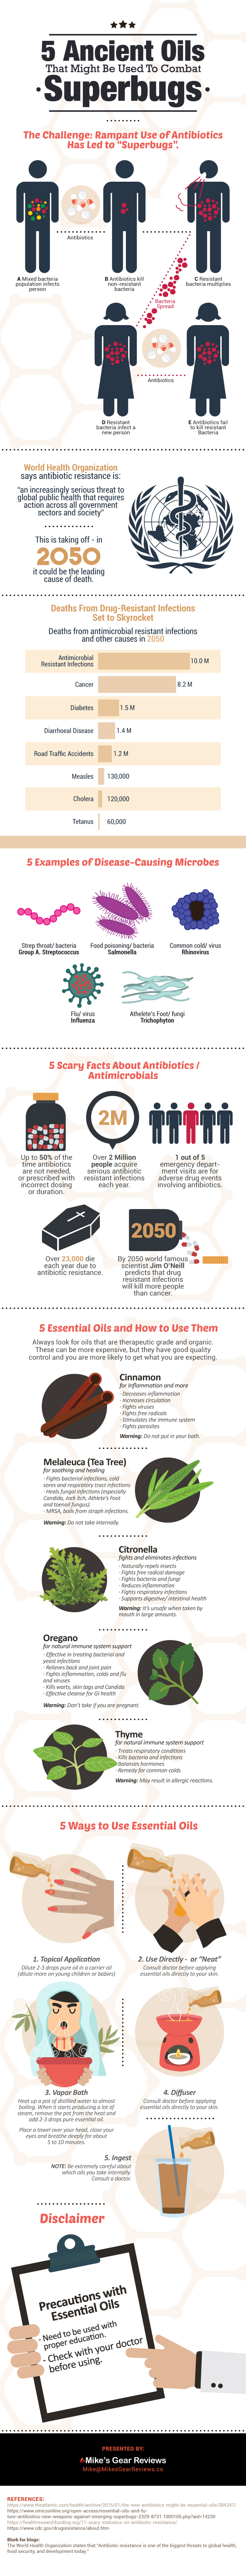 oils superbugs IG